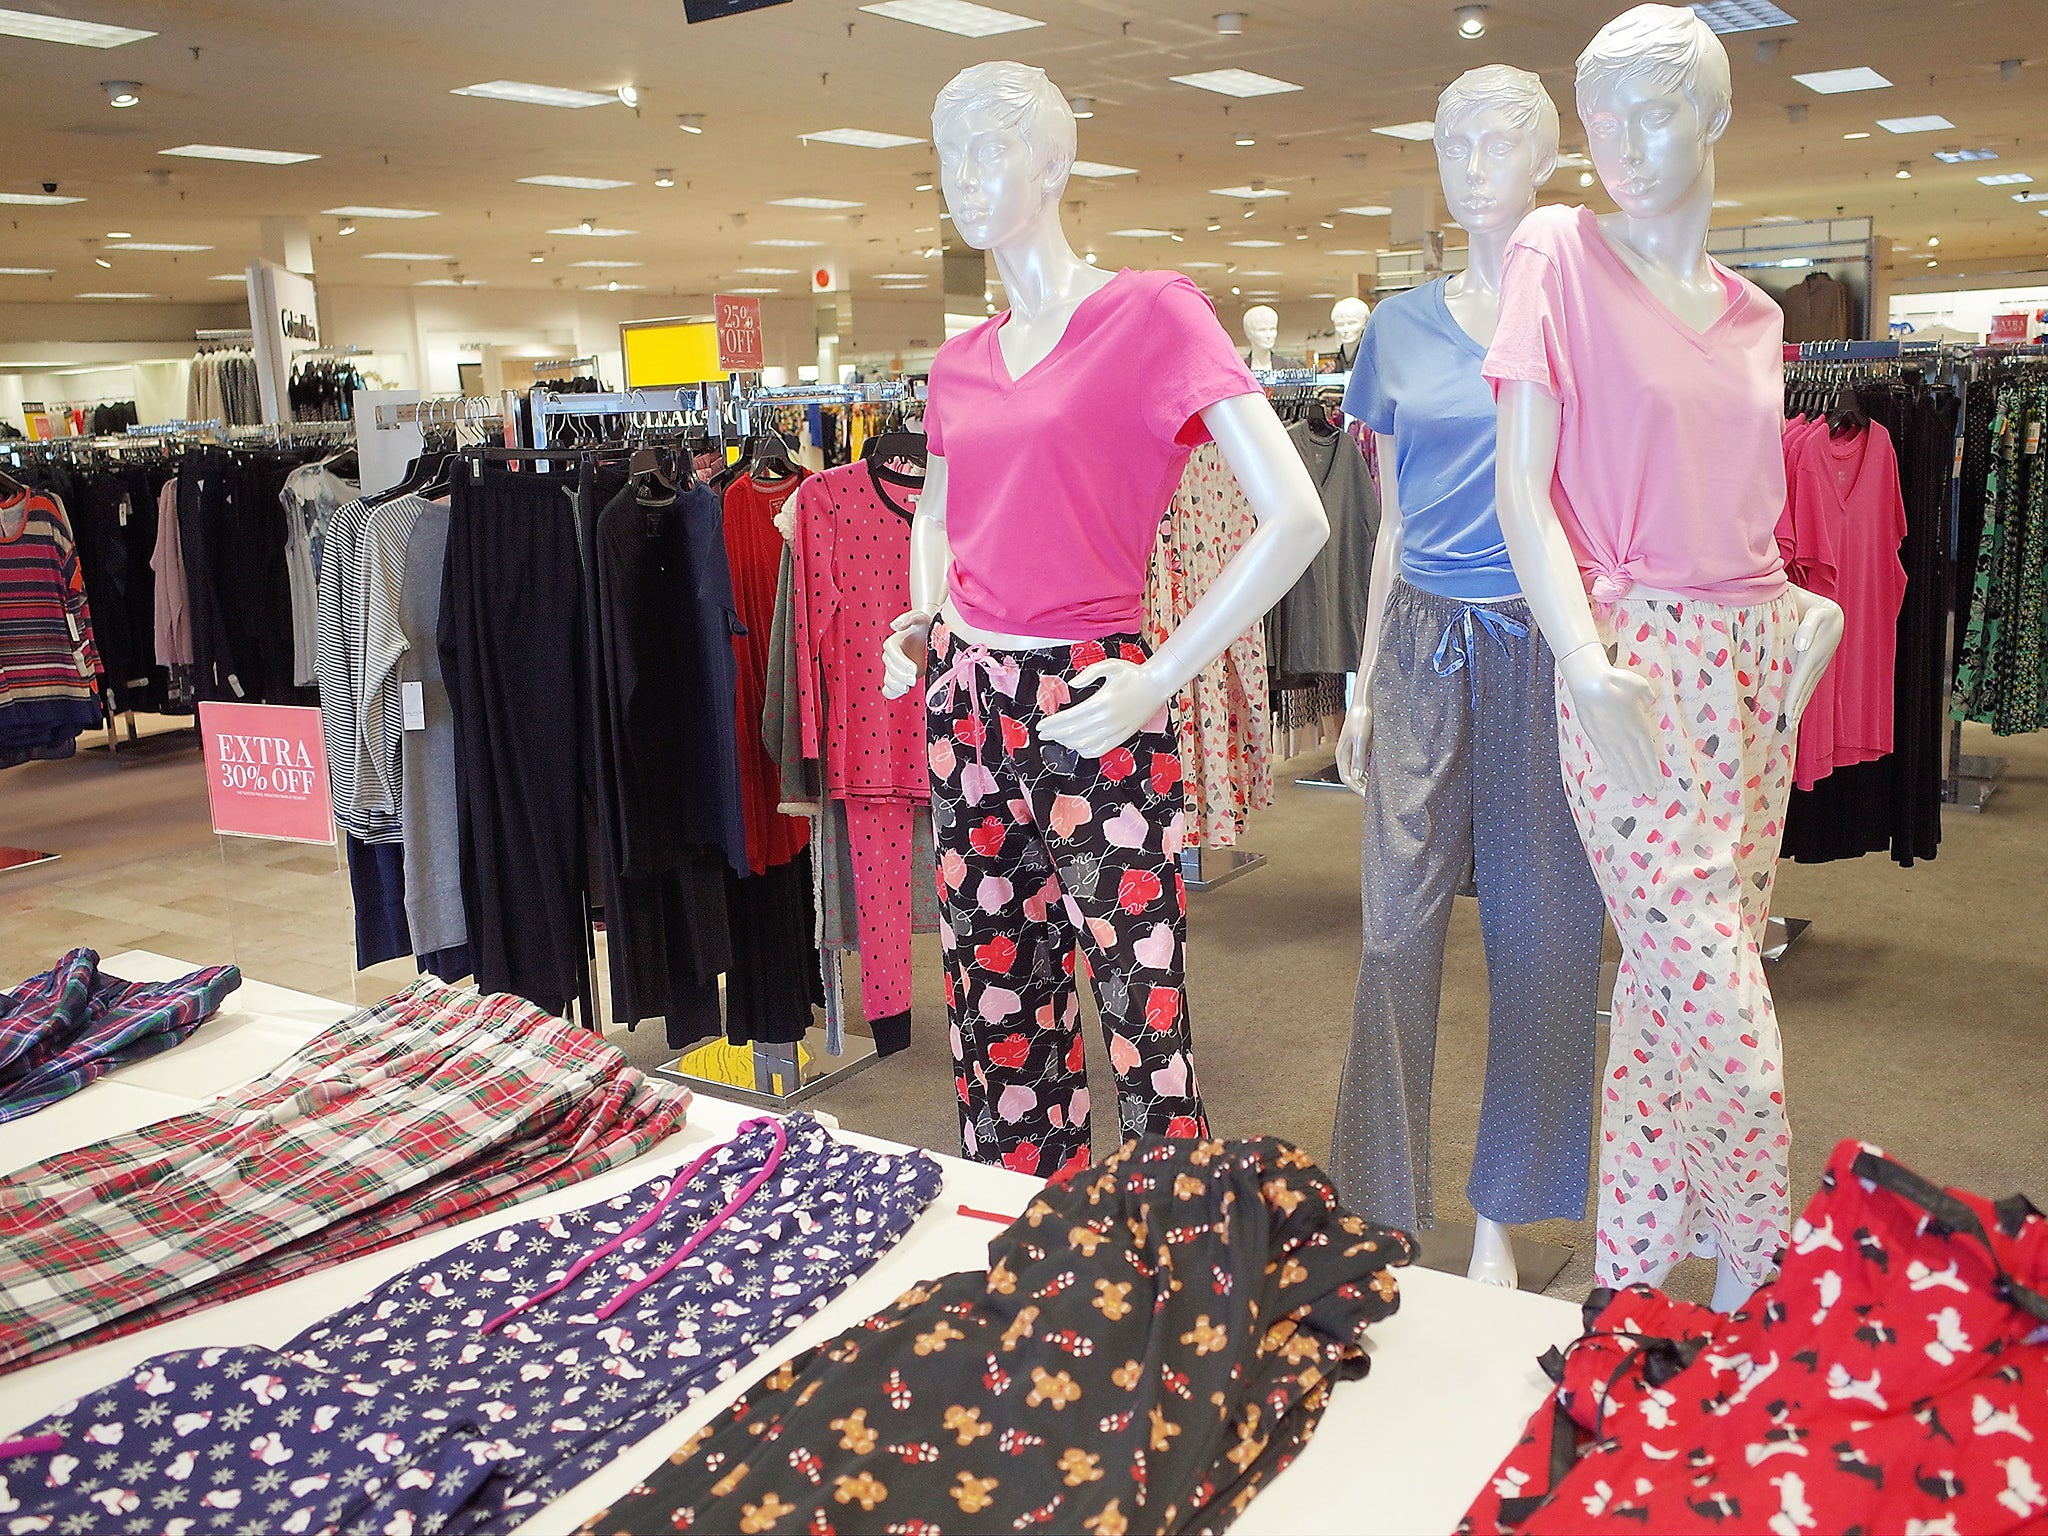 Unpaid labourers are 'slipping pleas for help into Zara clothes